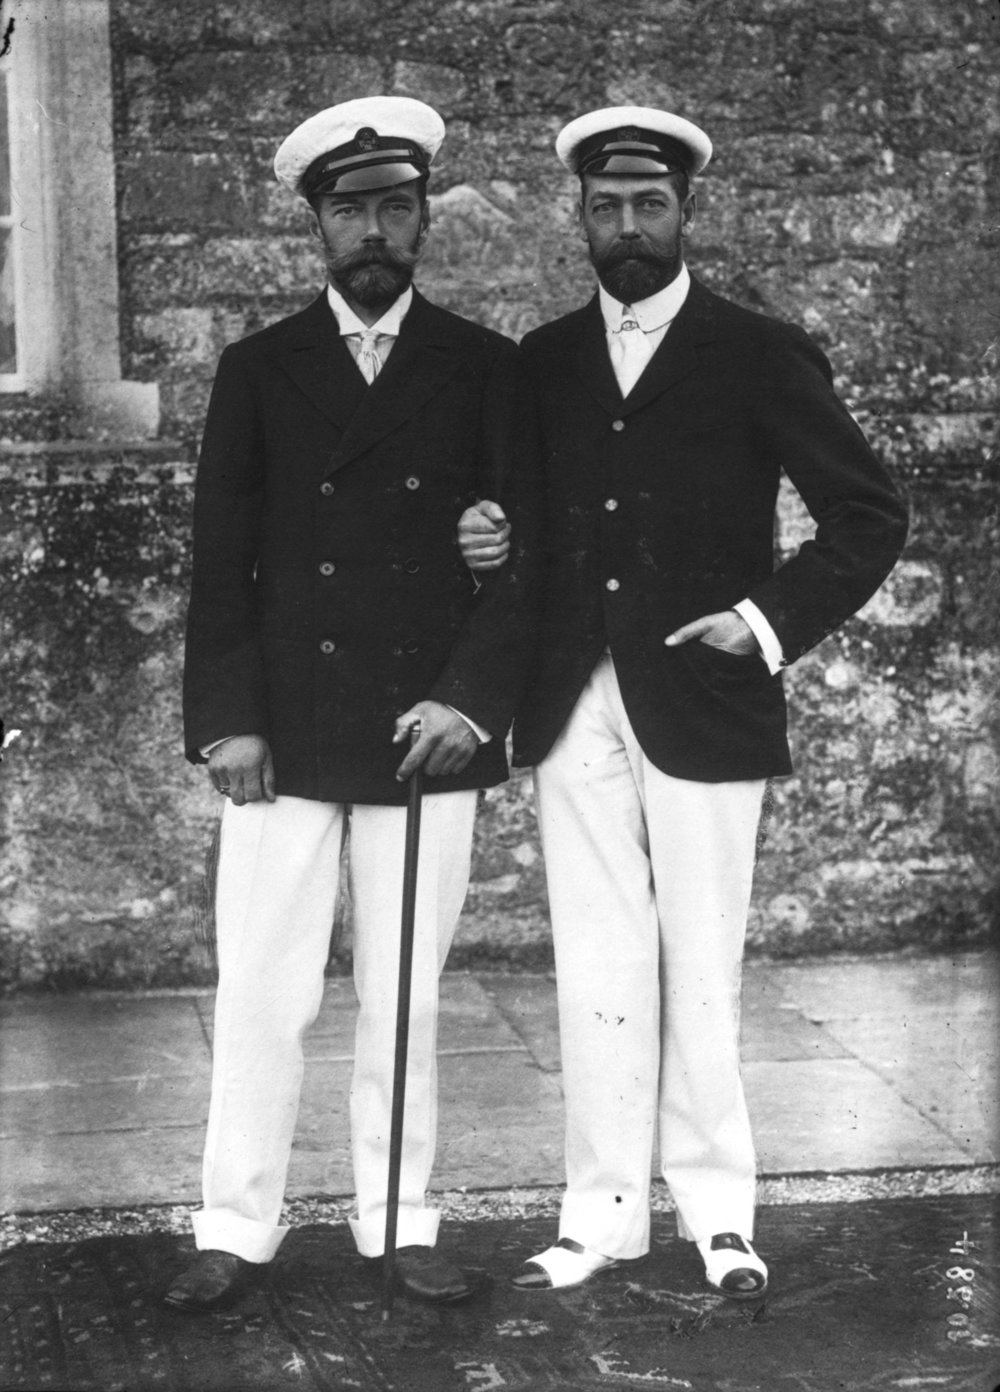 Photograph of Russian Leader, Tsar Nicholas II, and his cousin, King George V, on 4 August 1909 during a gathering at Osborne House in East Cowes, Isle of Wight. This was taken when Nicholas was on a state visit to England.